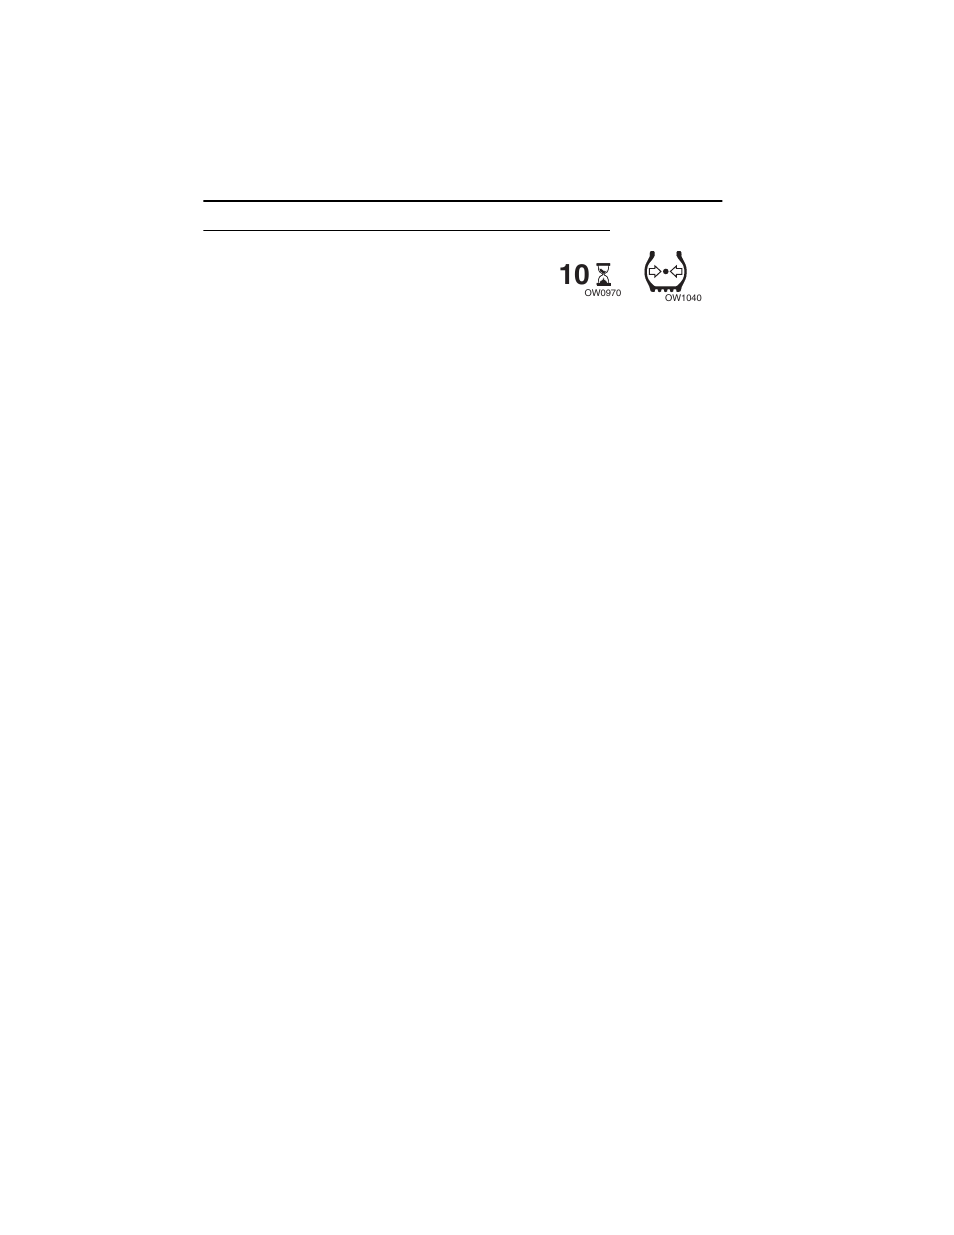 ... Array - tires tires 14 deutz fahr agrovector 35 7 user manual page 134  rh manualsdir